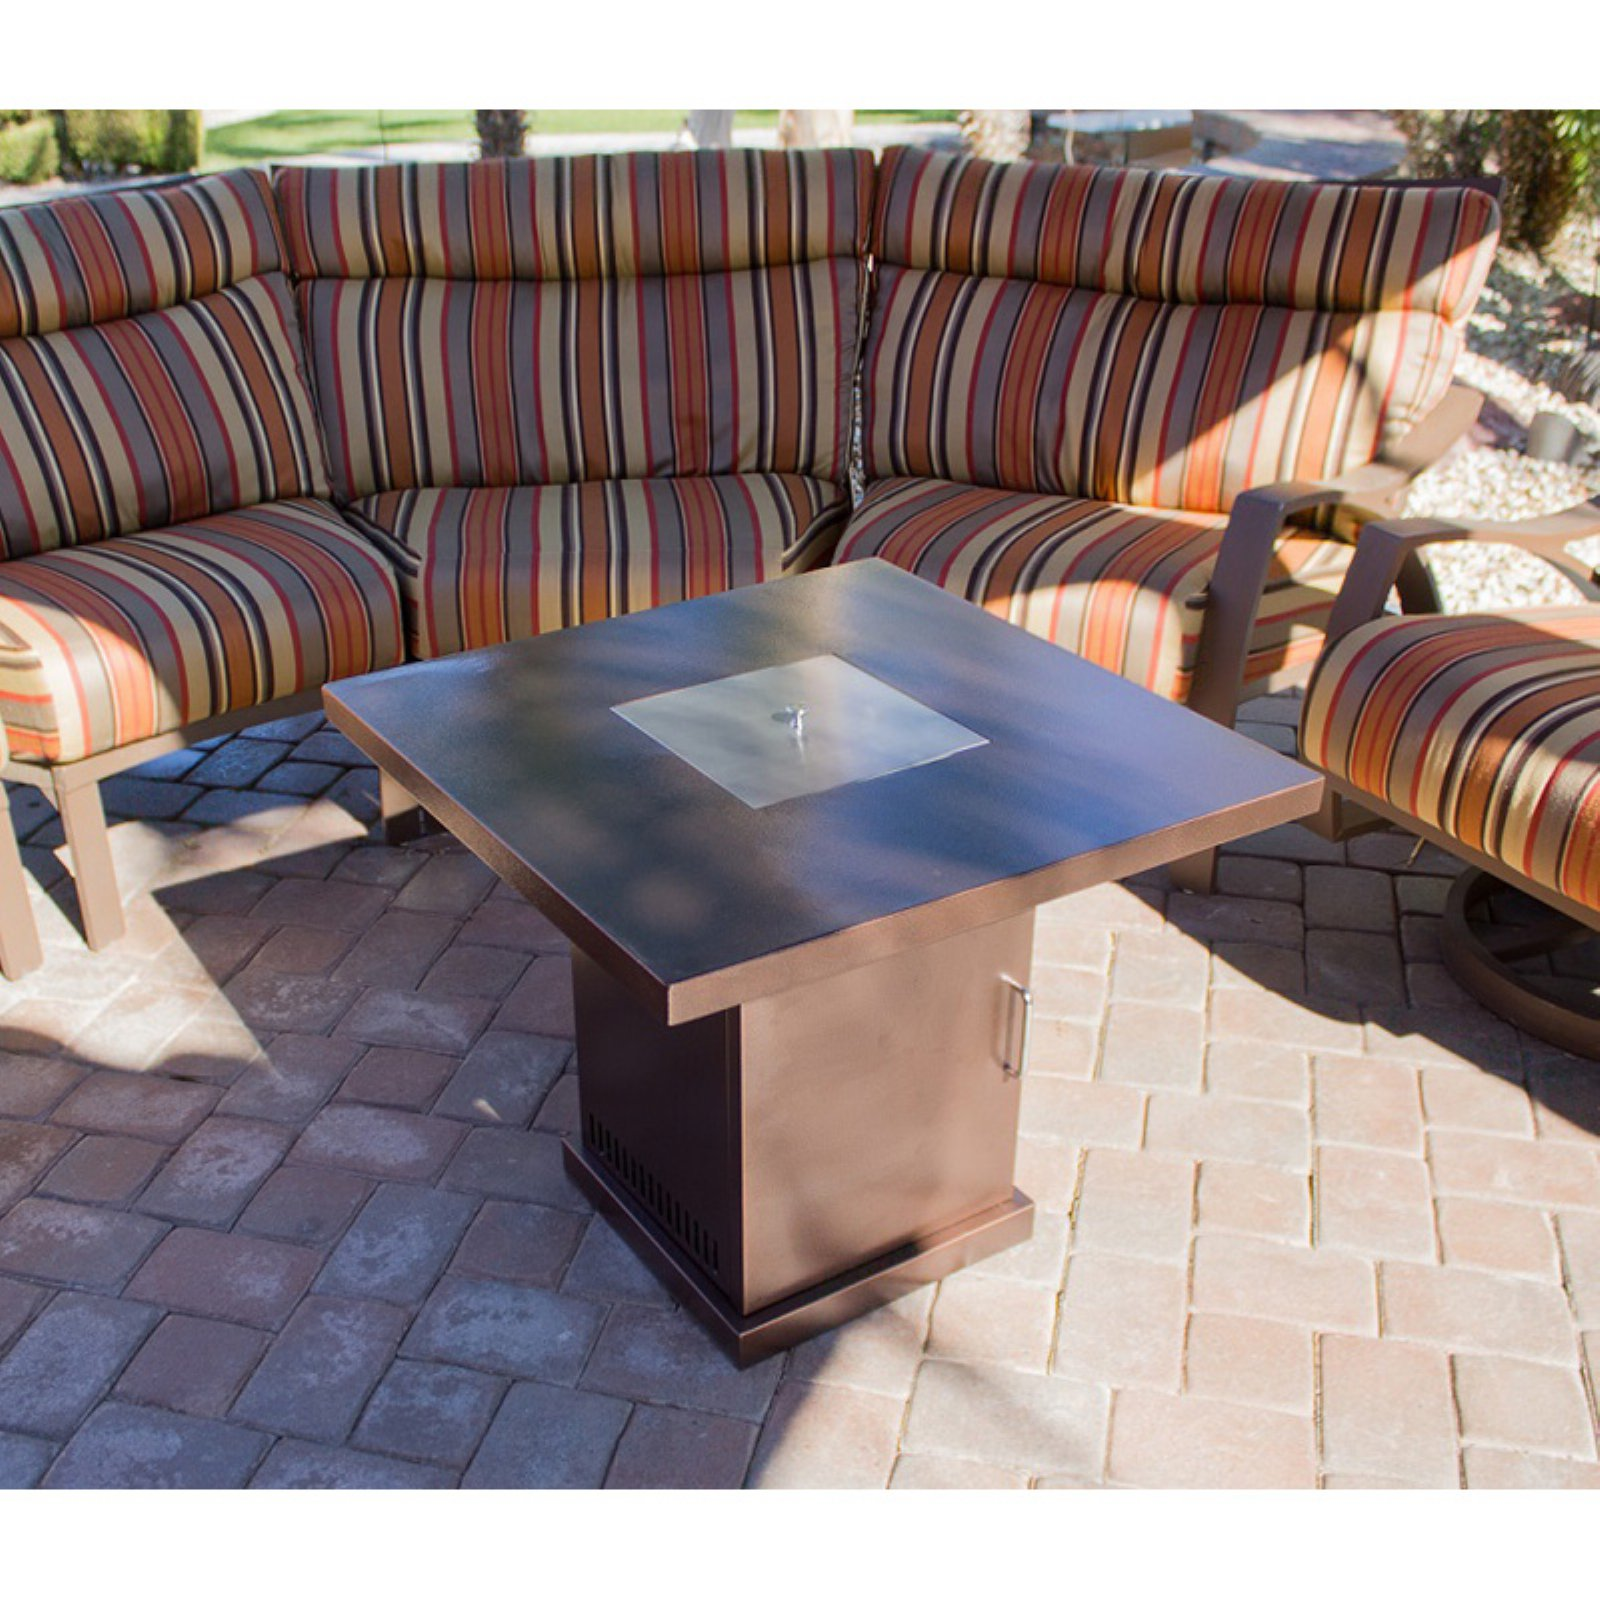 AZ Patio Heater Hiland Propane Gas Firepit by Overstock